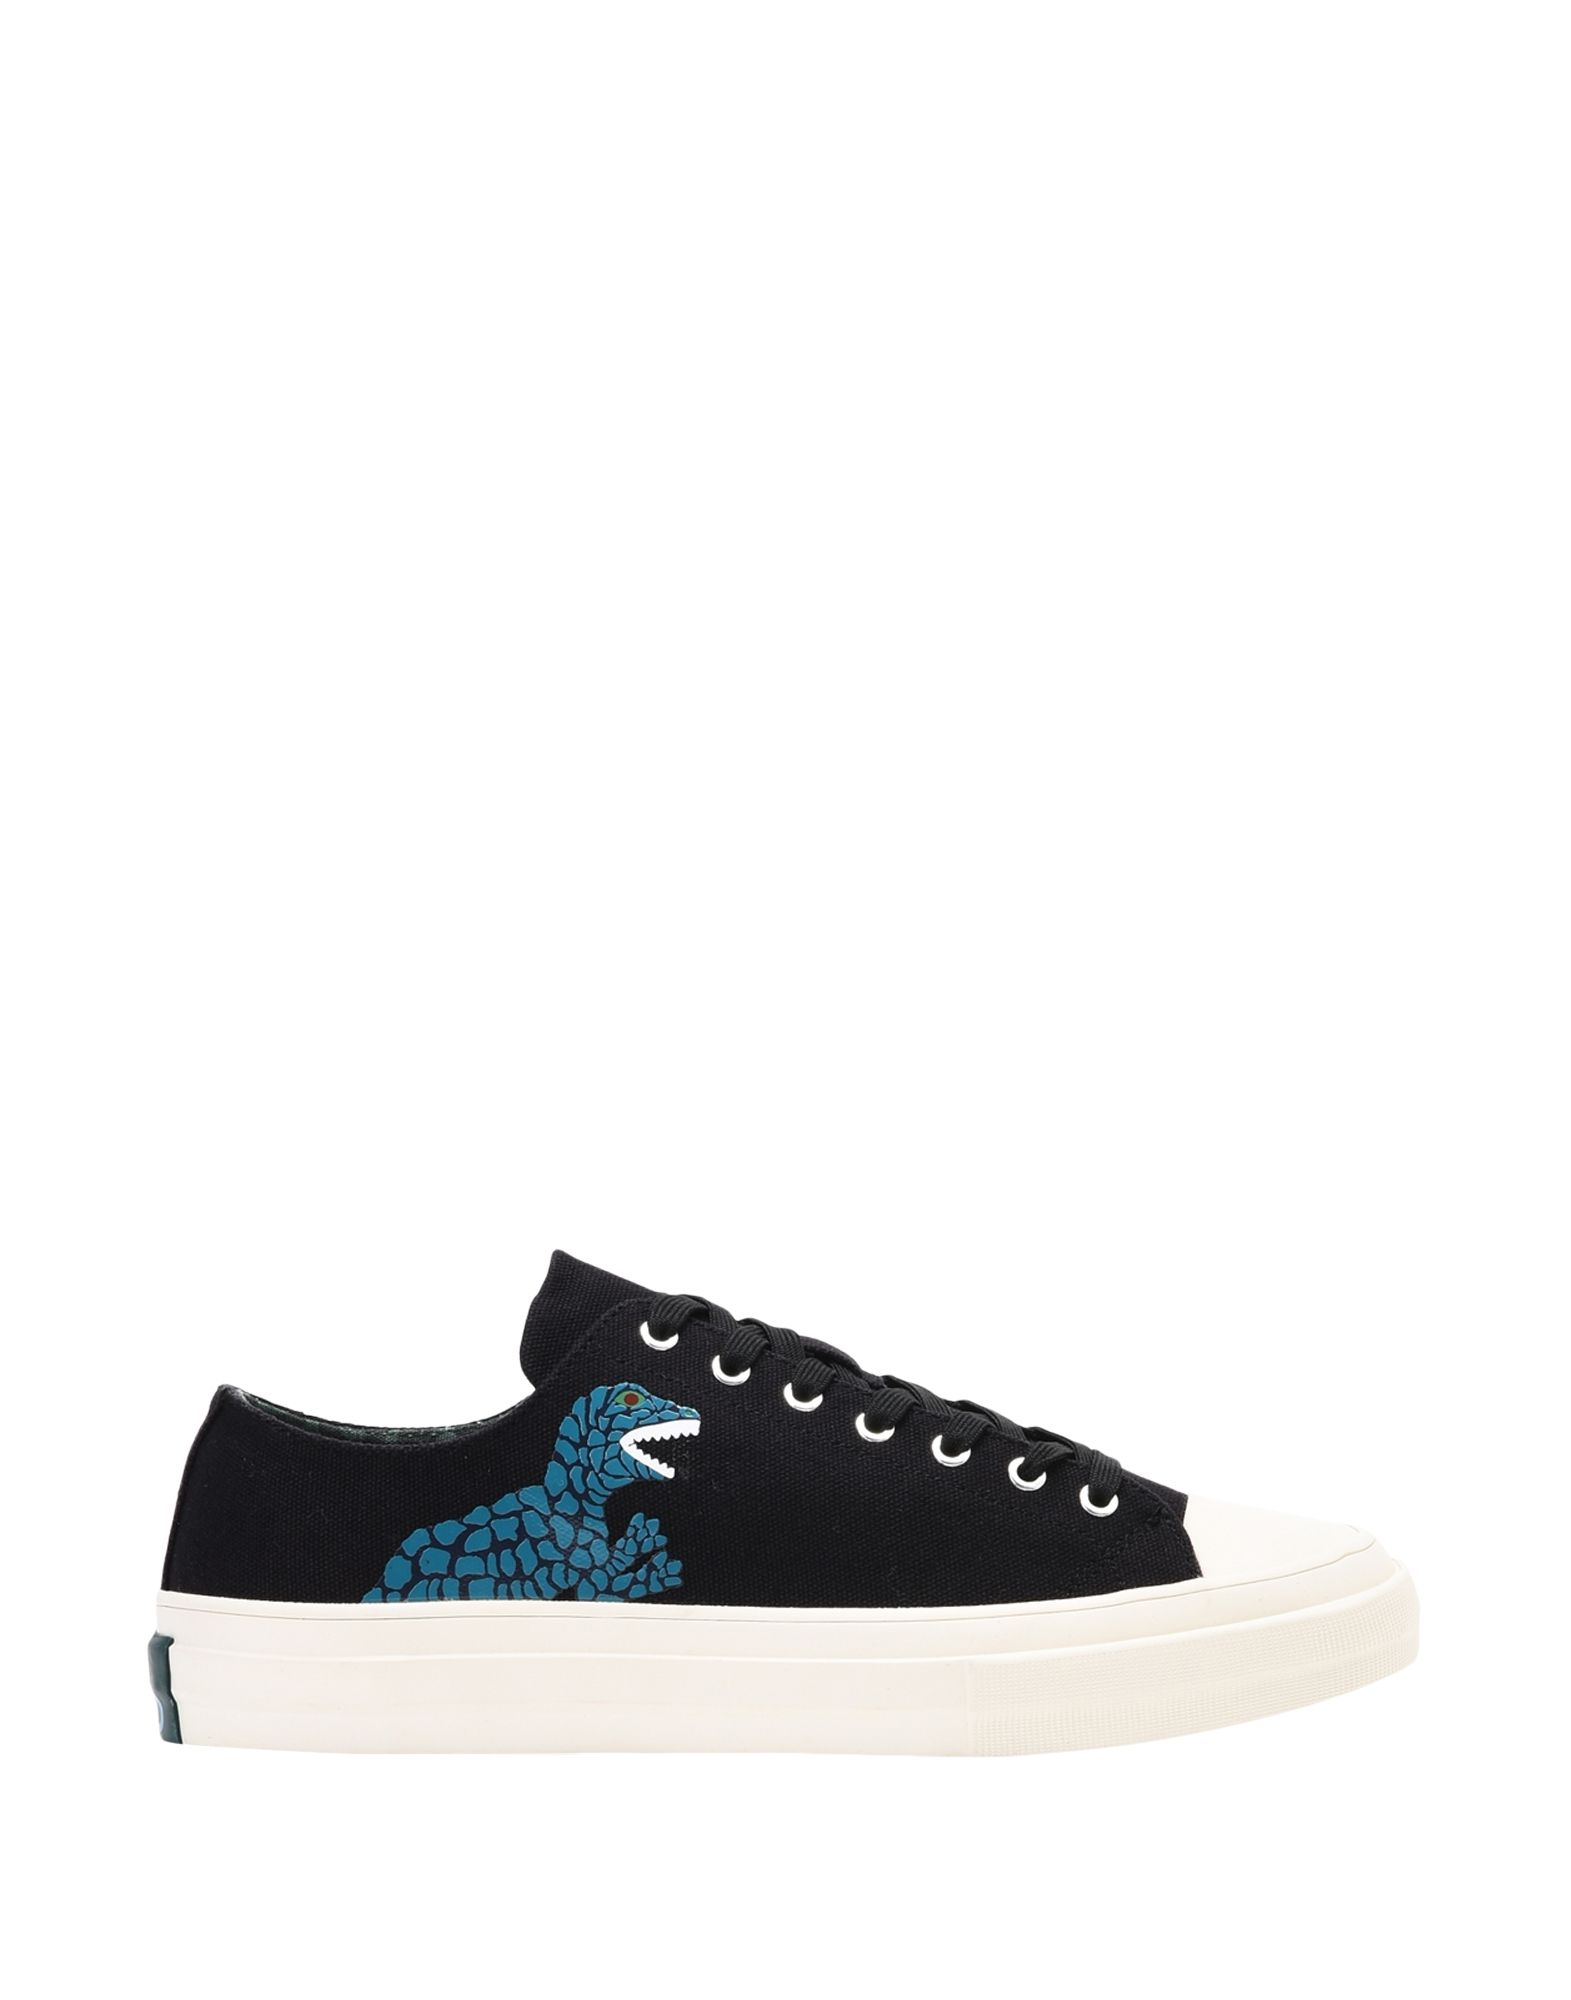 ... Sneakers Paul Smith Mens Shoe Kinsey Black - Homme - Sneakers Paul  Smith sur ...